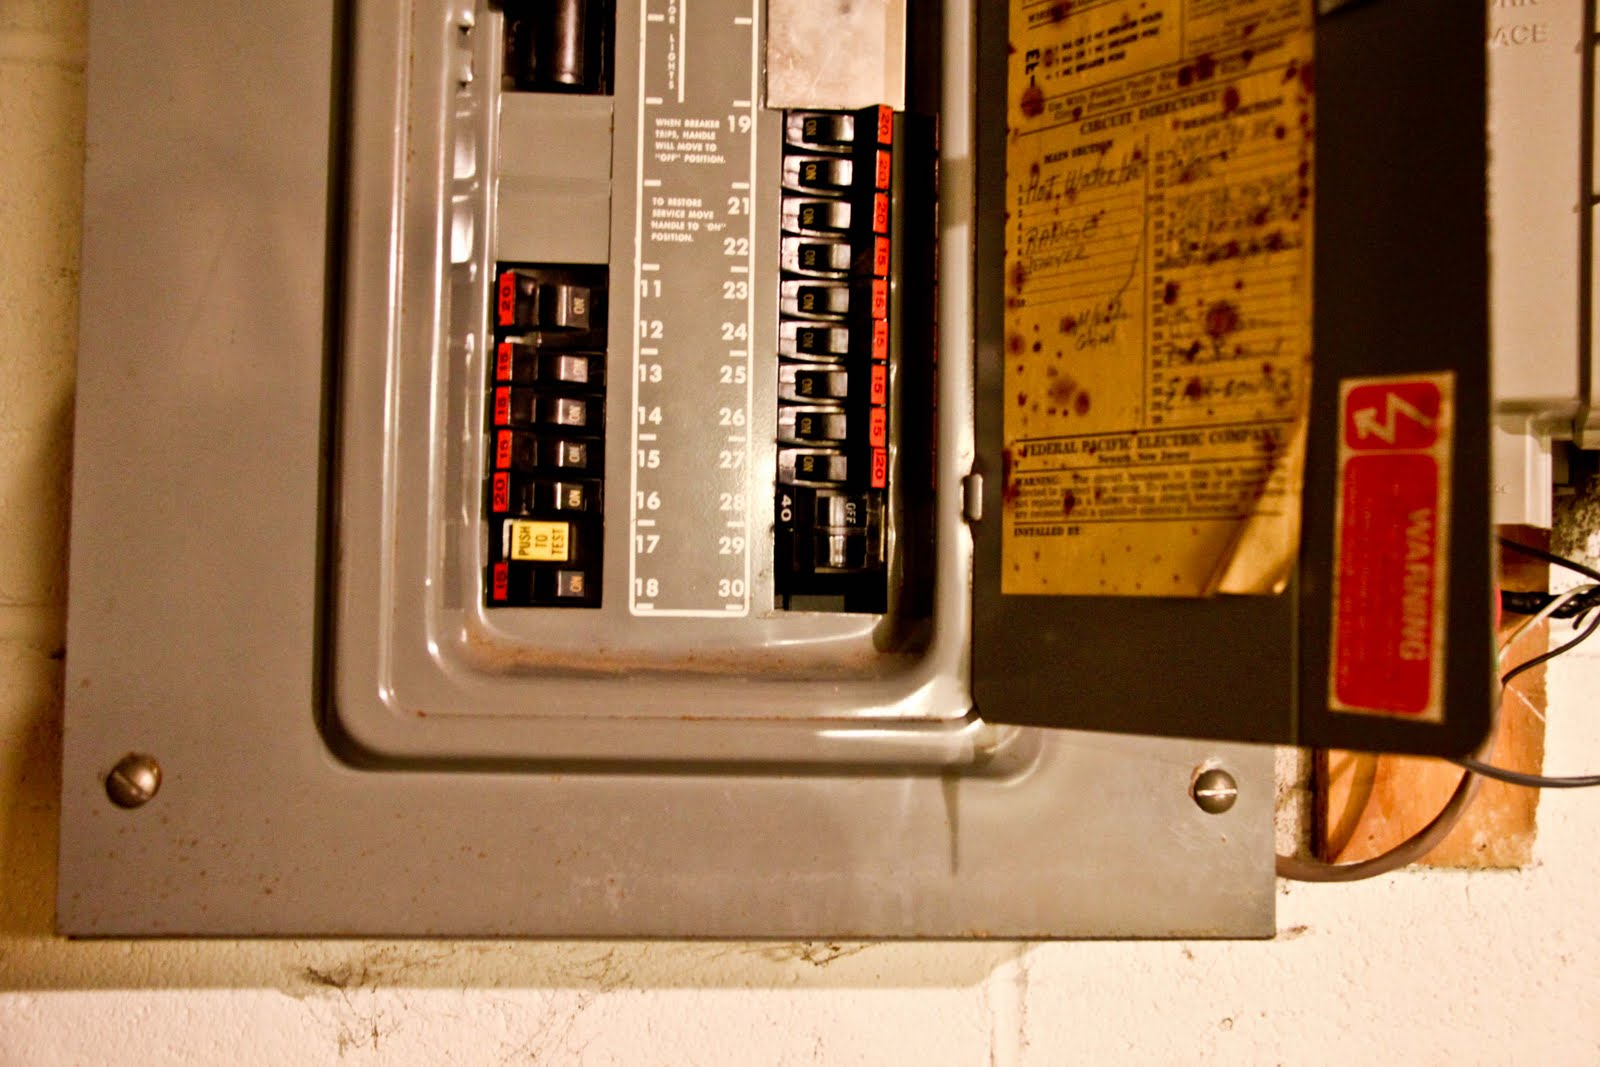 IMG_4614 replacing fuse on central ac unit work space how to reset fuse box in house at arjmand.co